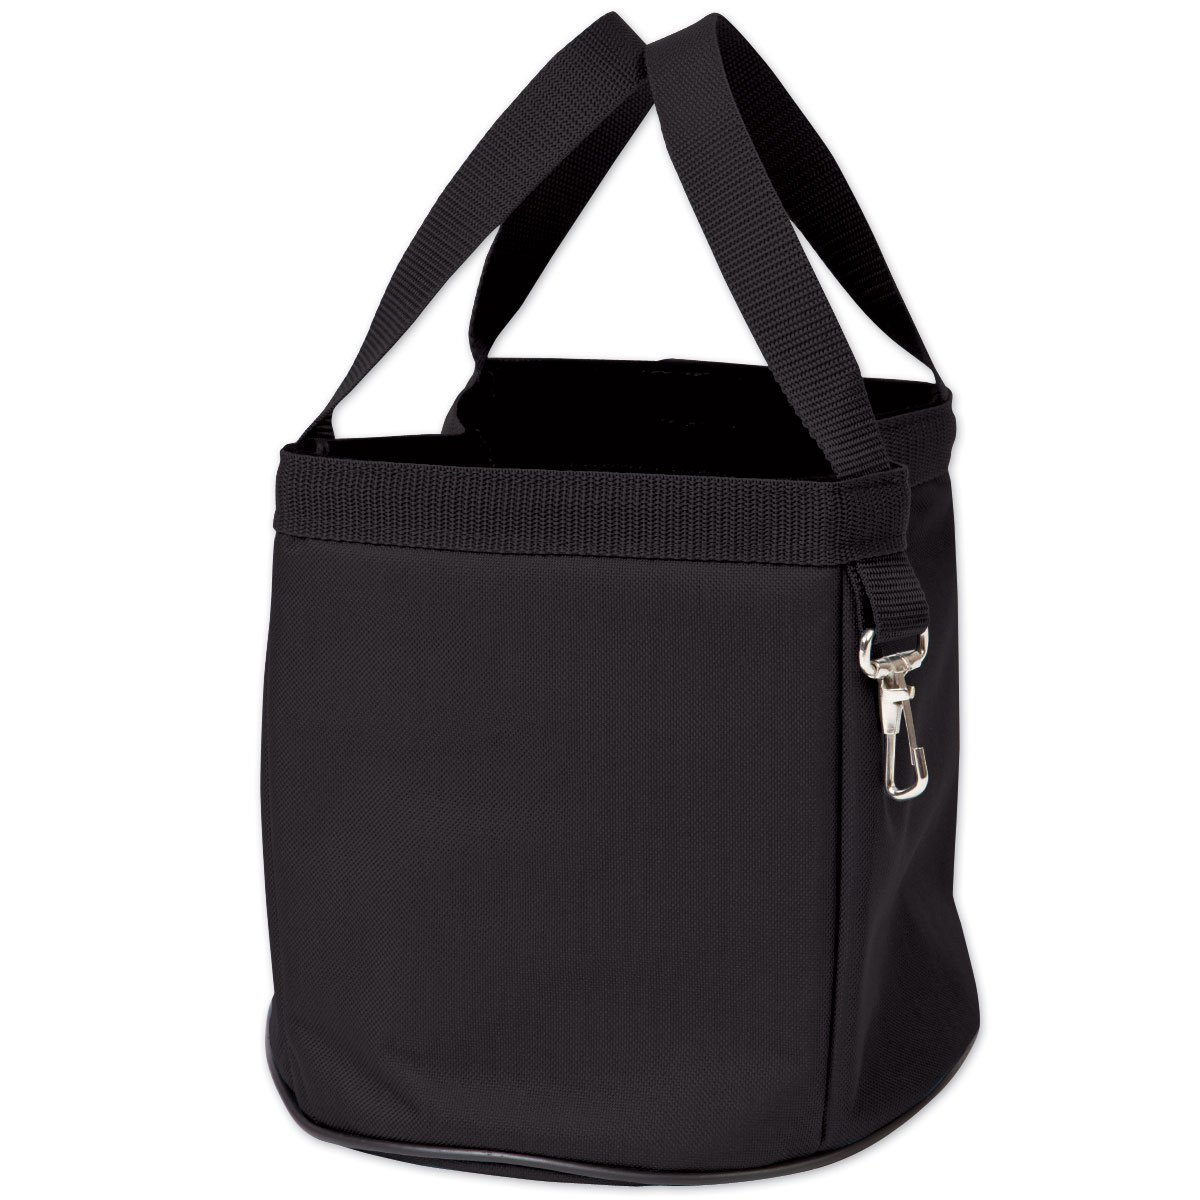 Tough 1 Groom Caddy Tote Black